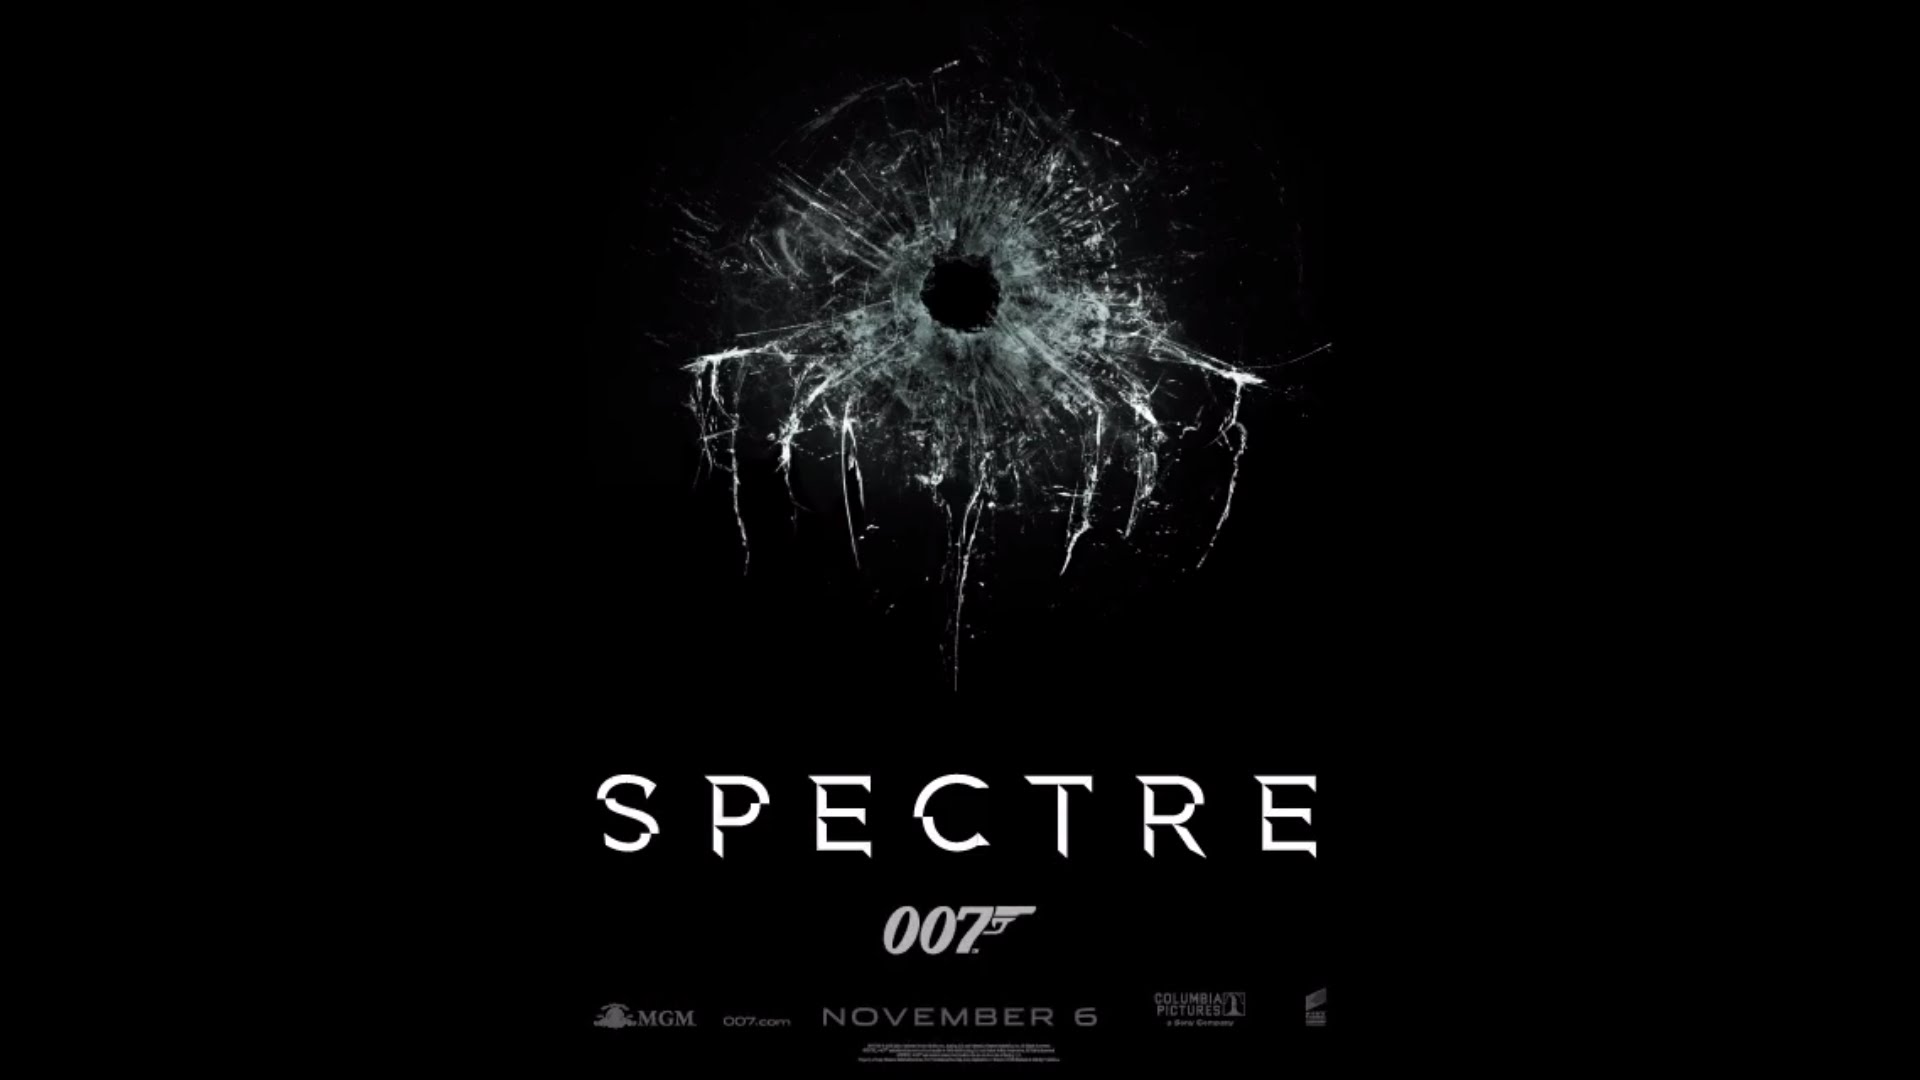 spectre the 24th james bond film the champagne blog by the champagnesommelier. Black Bedroom Furniture Sets. Home Design Ideas